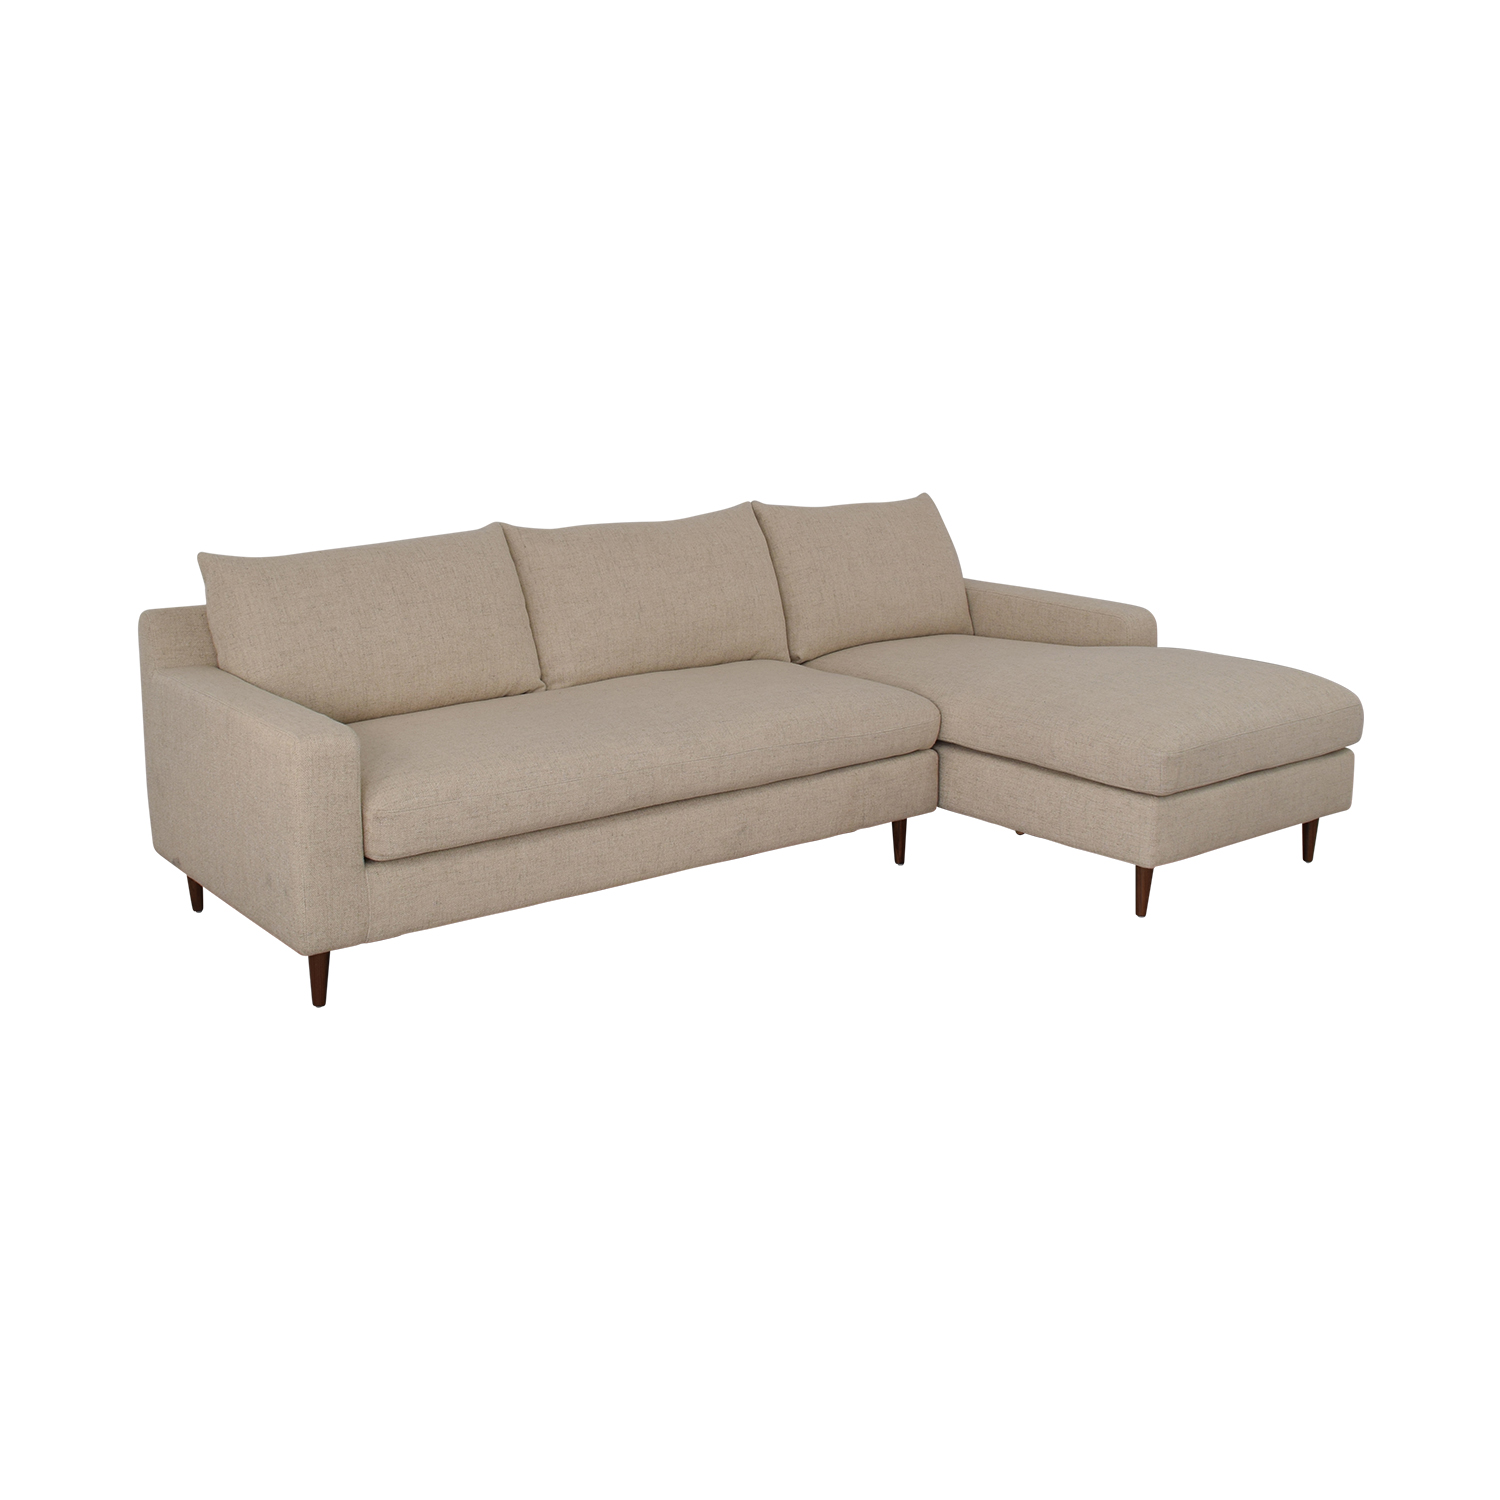 Interior Define Sloan Beige Right Arm Chaise Sectional dimensions